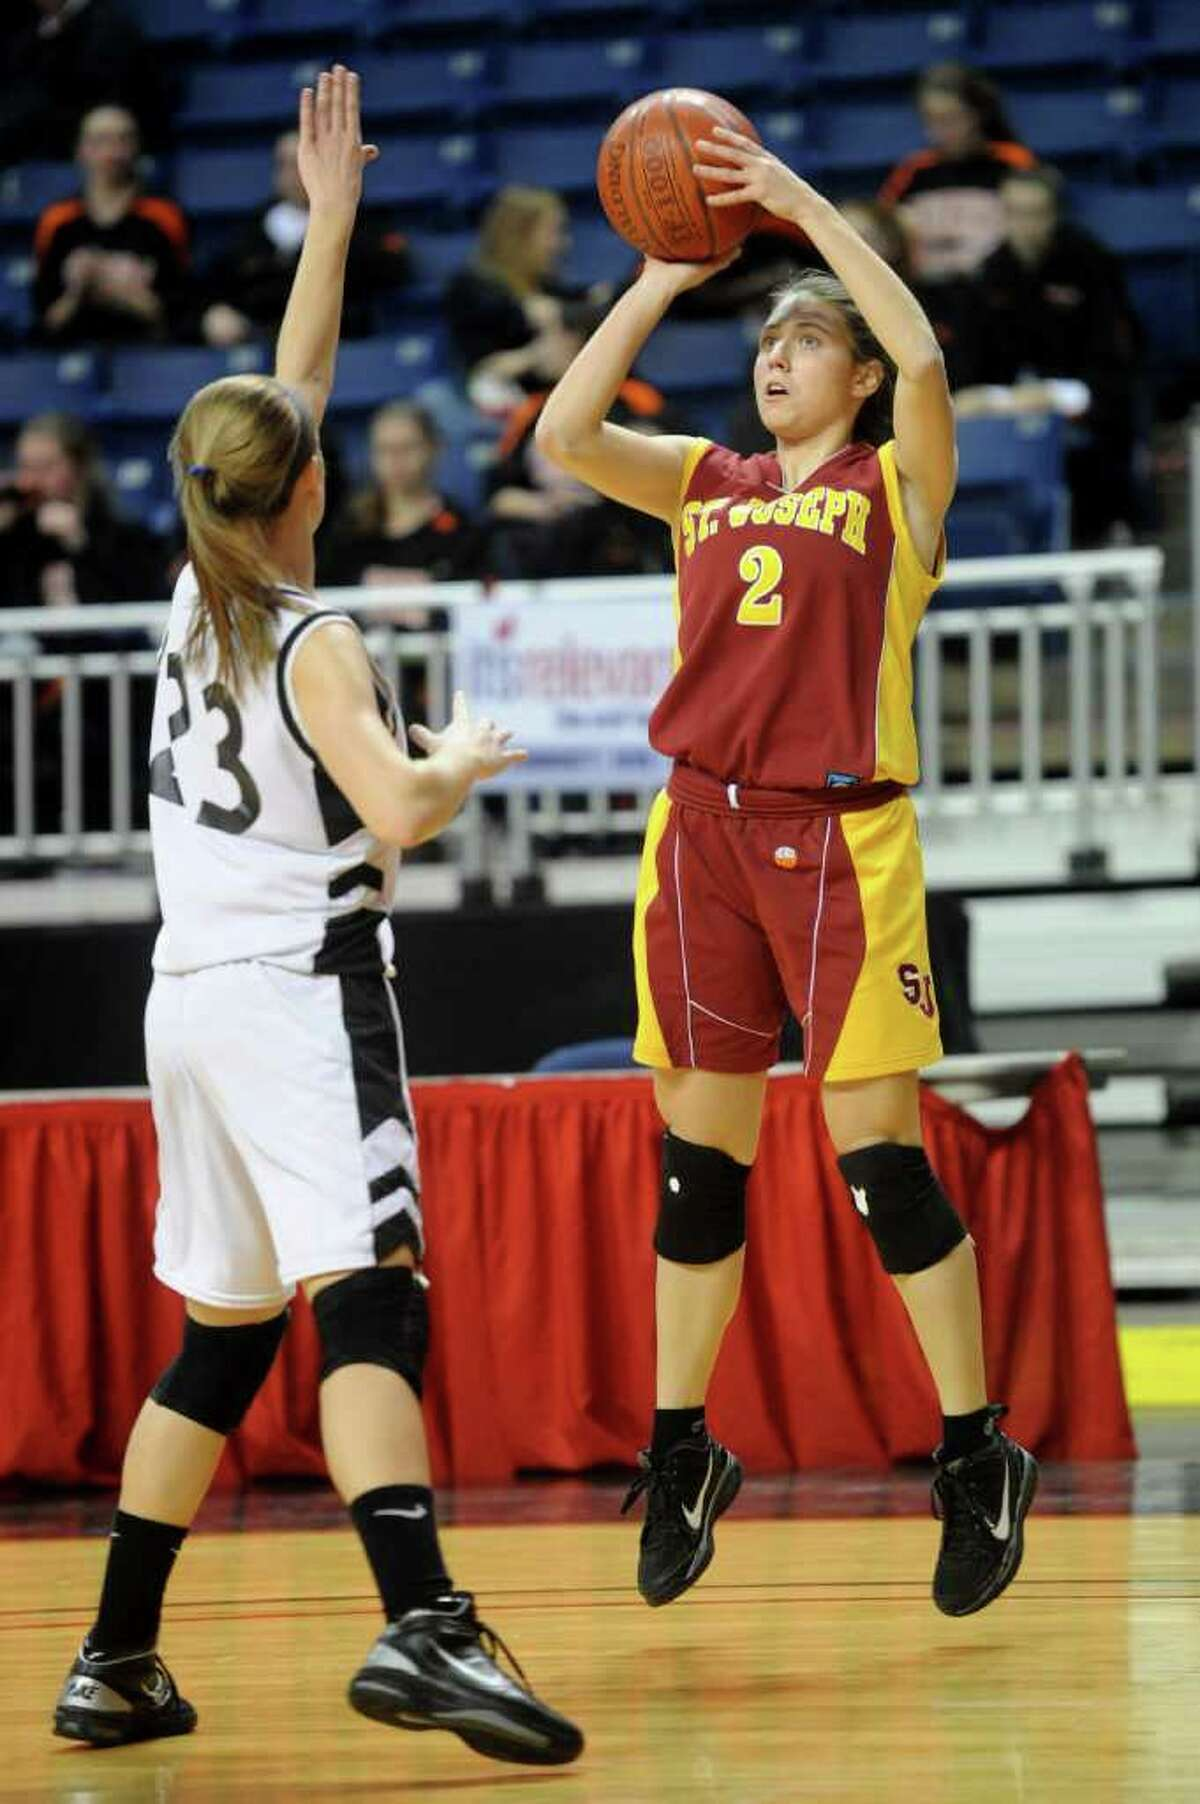 Jessica Jowdy of St. Joseph takes a shot as she is guarded by Trumbull's Victoria Pfohl during Tuesday's FCIAC girls basketball semifinal game at the Webster Bank Arena at Harbor Yard on Feburary 22, 2011.